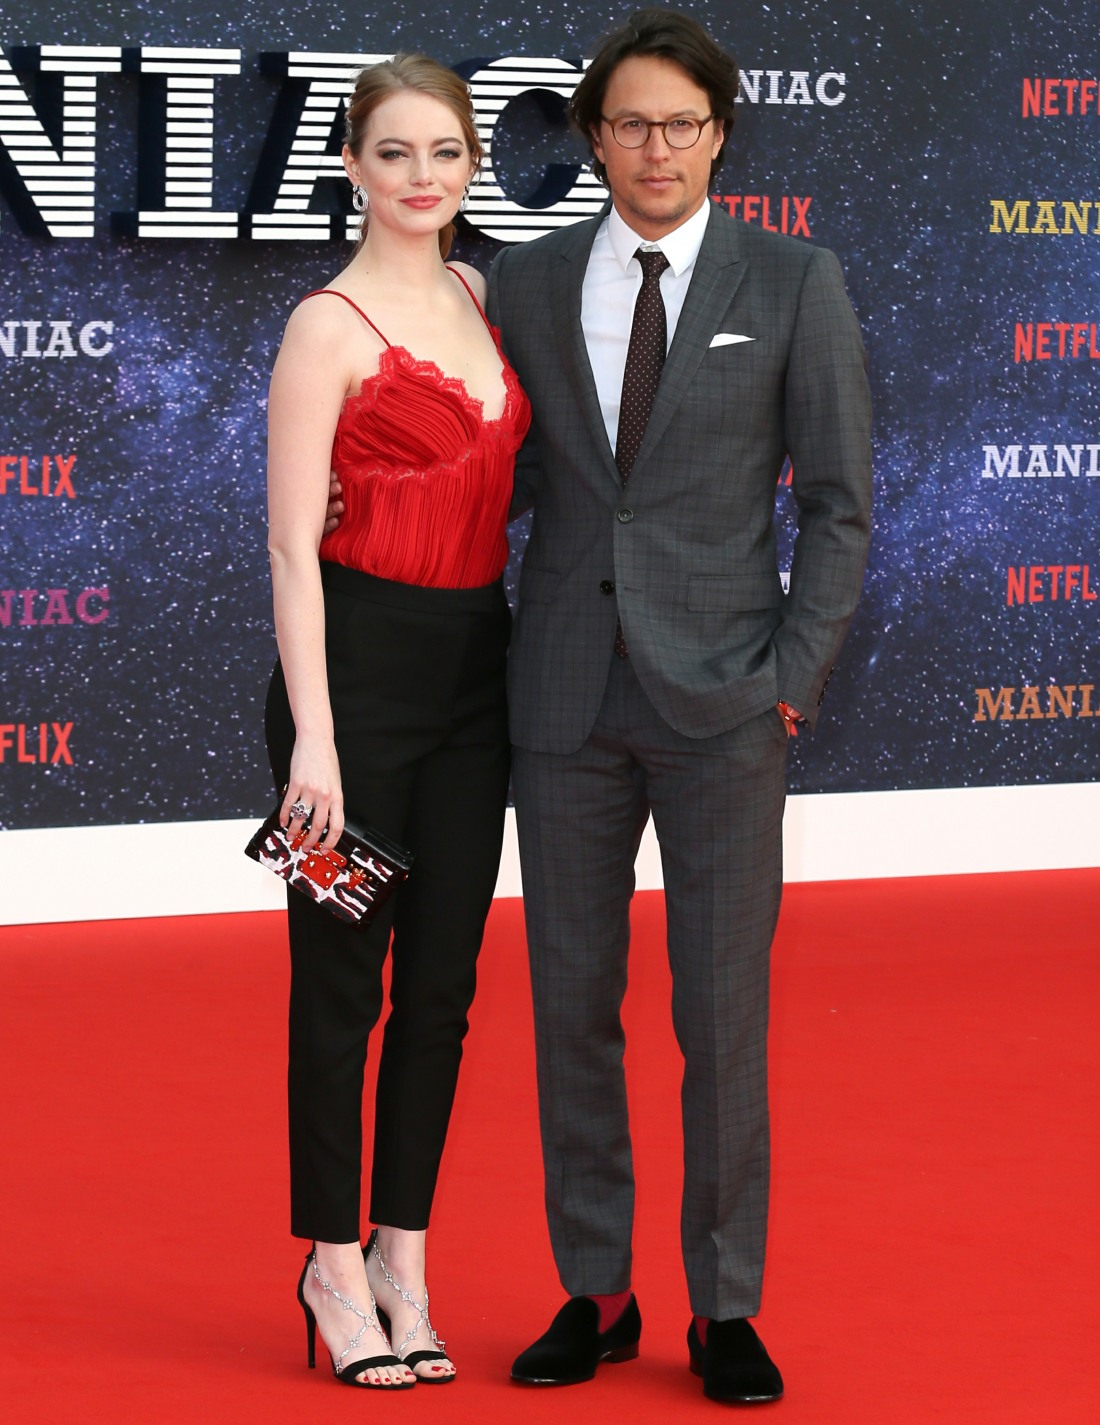 The World Premiere of 'Maniac' held at the BFI Southbank